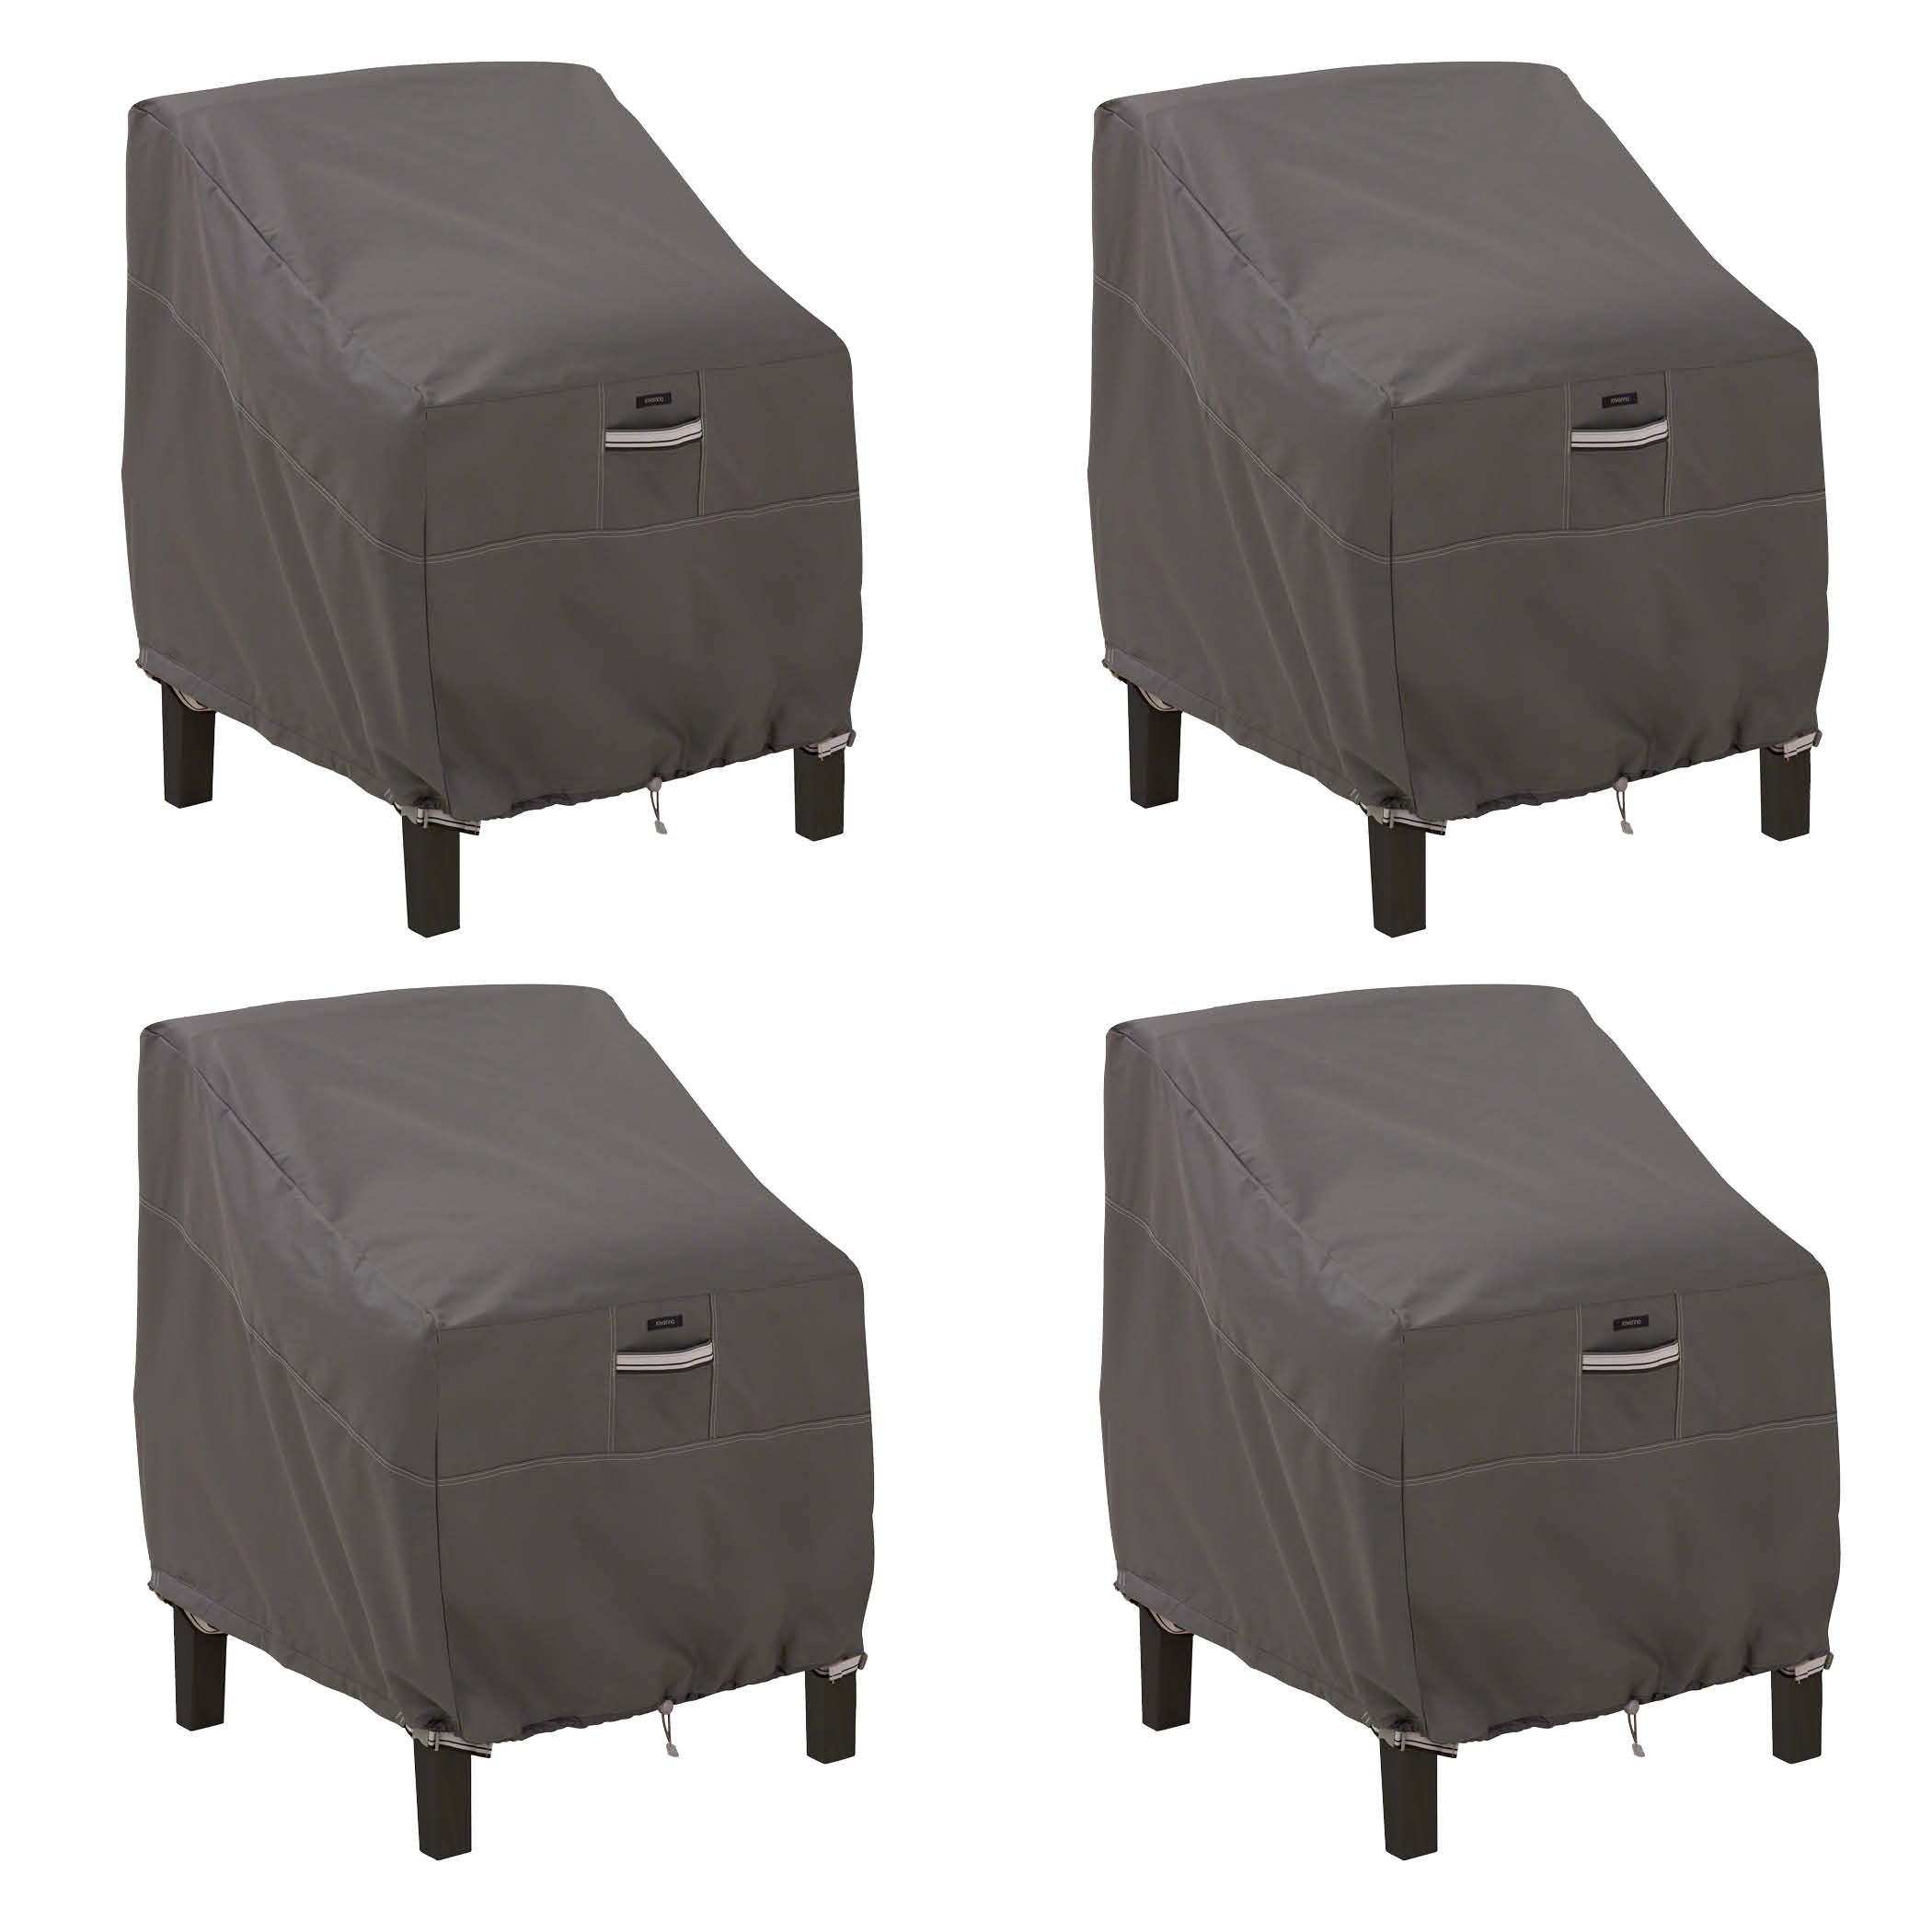 Classic Accessories 55-160-015101-4PK Ravenna Patio Lounge Chair Cover, Large (4-Pack)